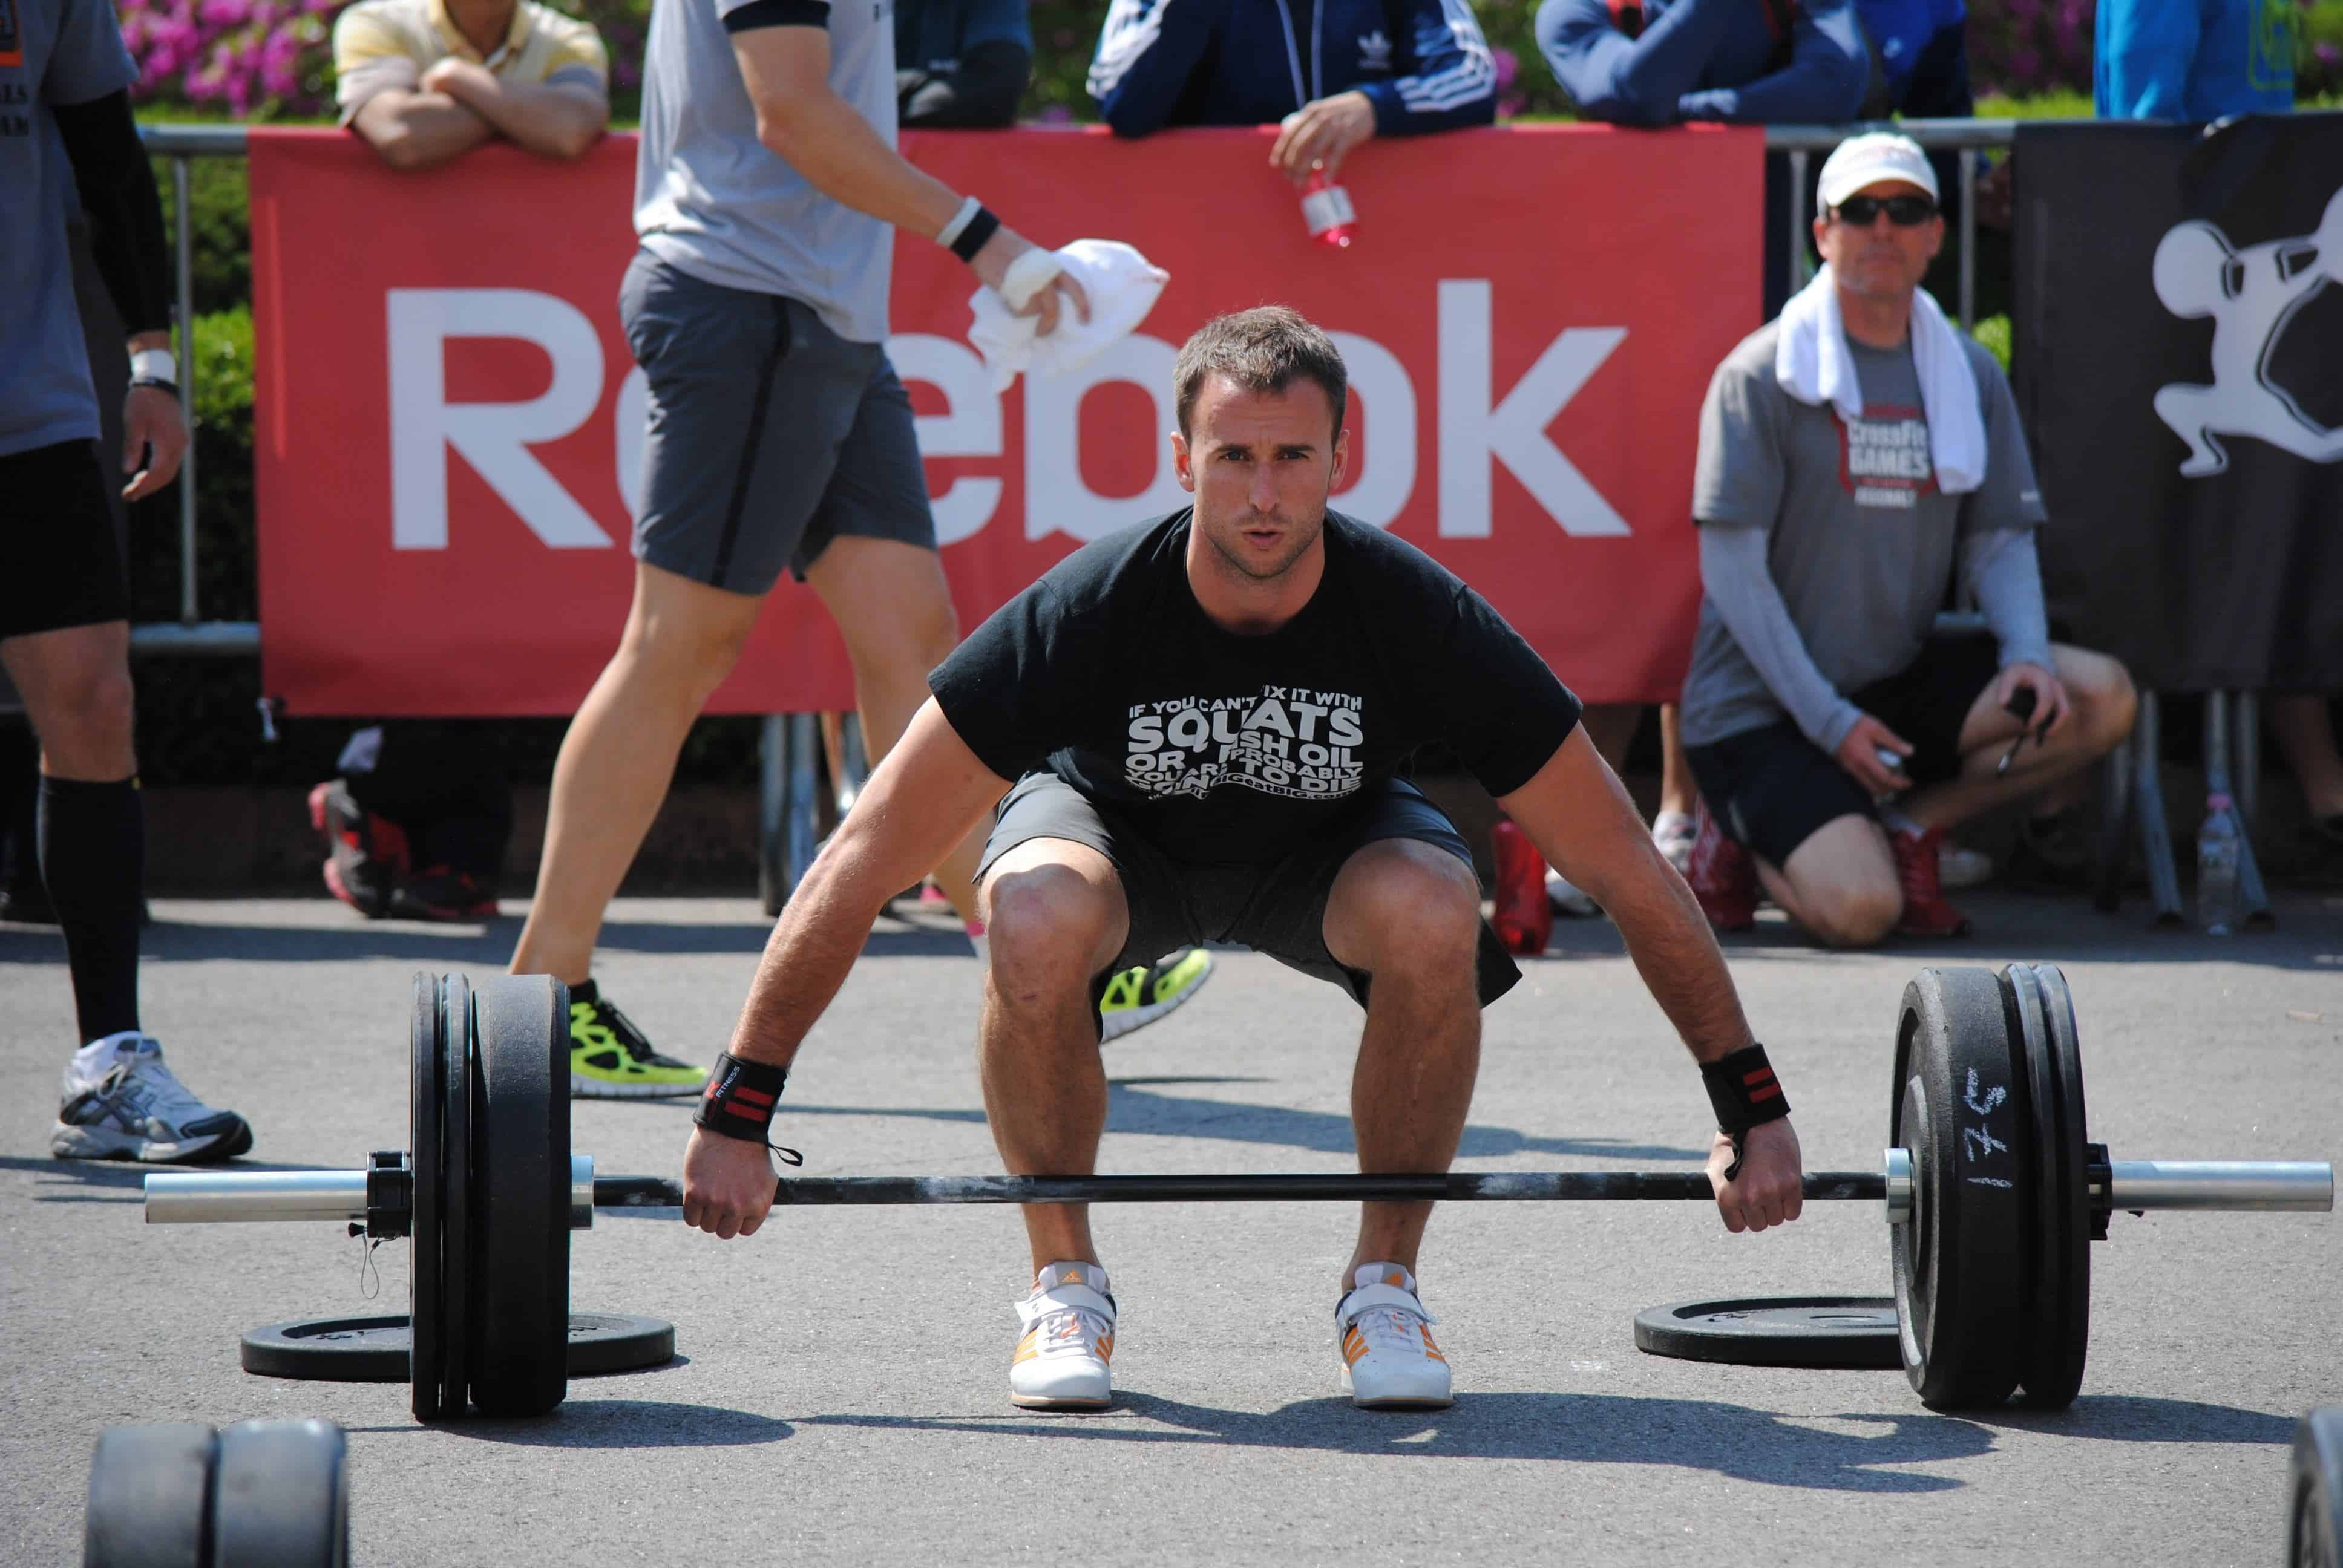 CrossFit guy doing deadlift outside in competition